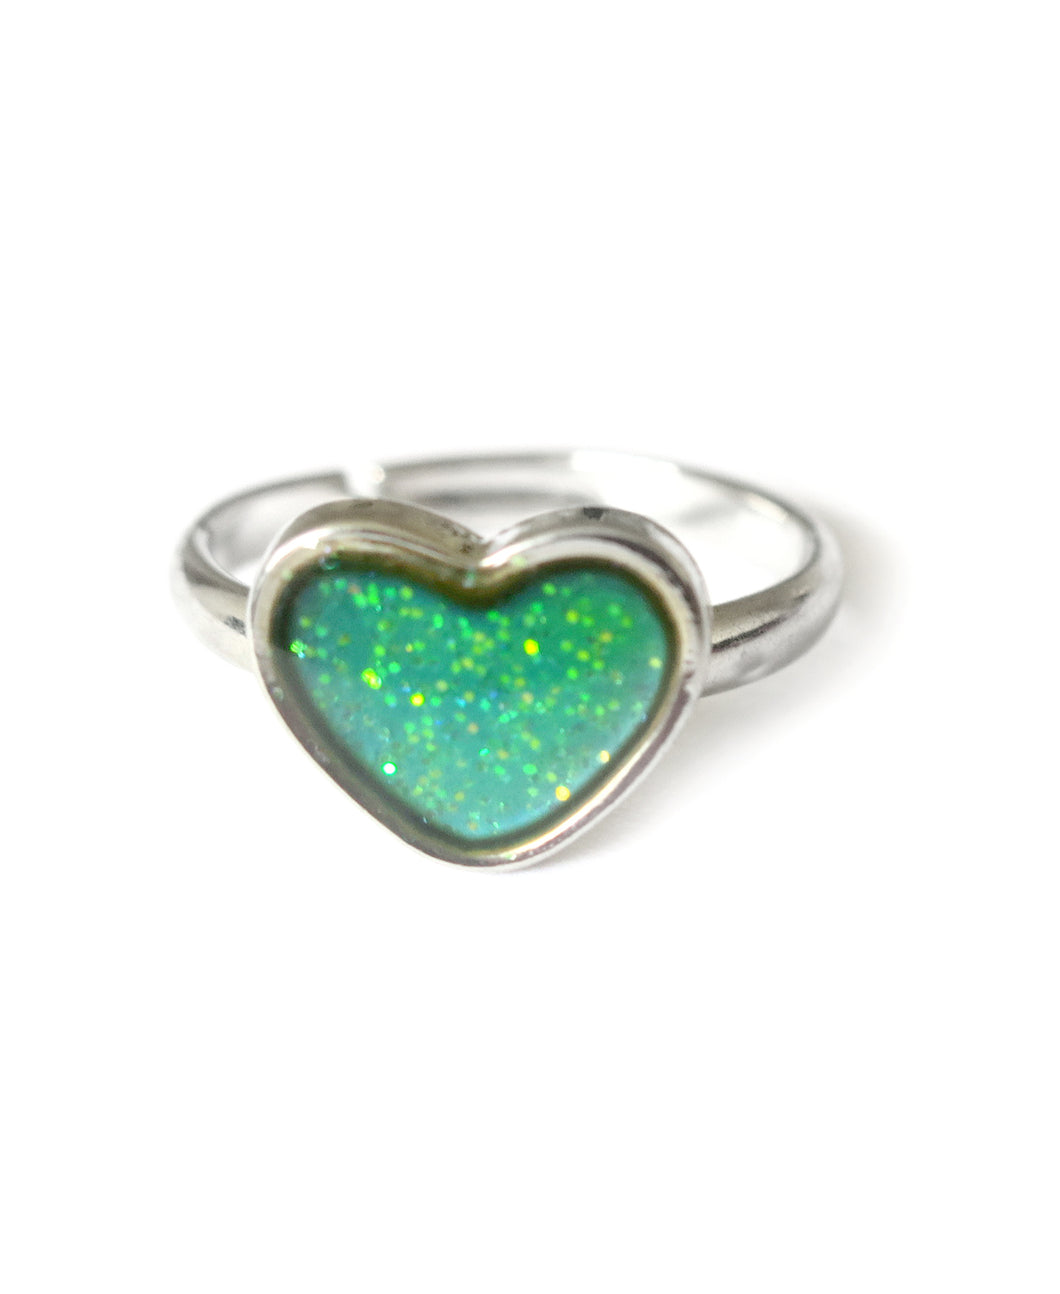 Heart Mood Ring